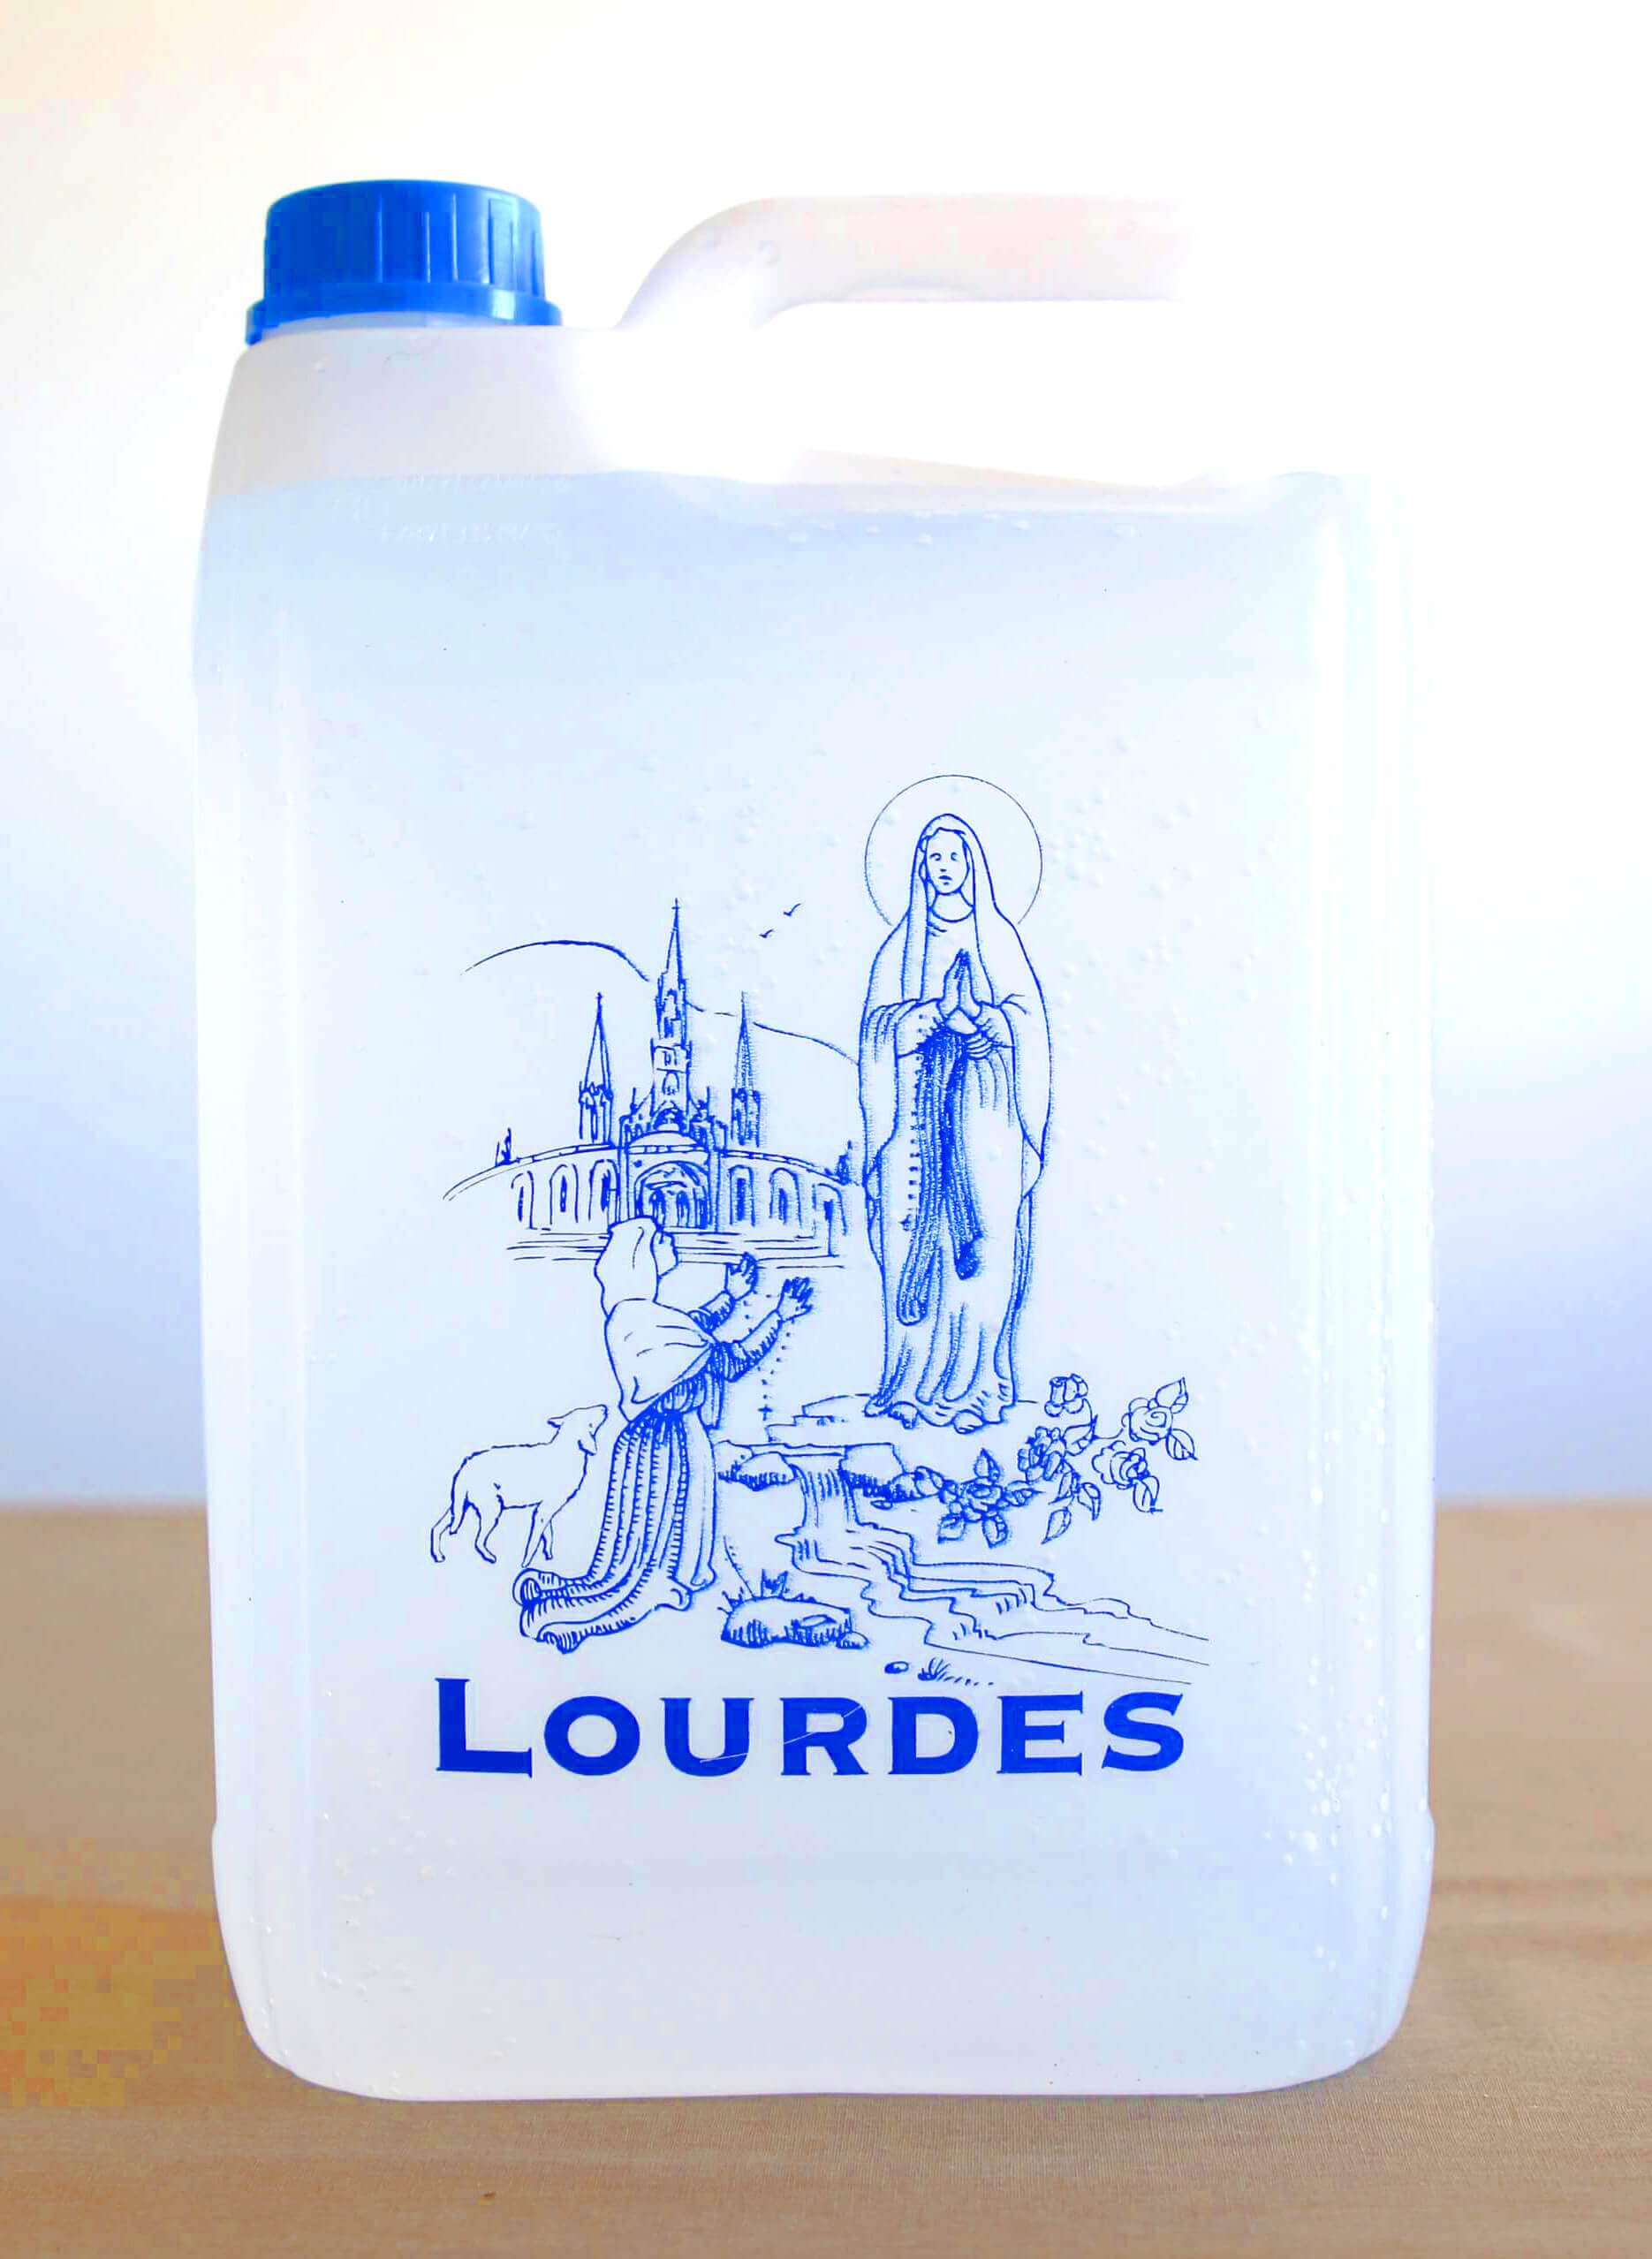 LOURDES HOLY WATER CONTAINER 5L (1,321 GAL) - LAST UNITS - Filled with AUTHENTIC LOURDES WATER from the Grotto by AUTHENTIC FROM LOURDES